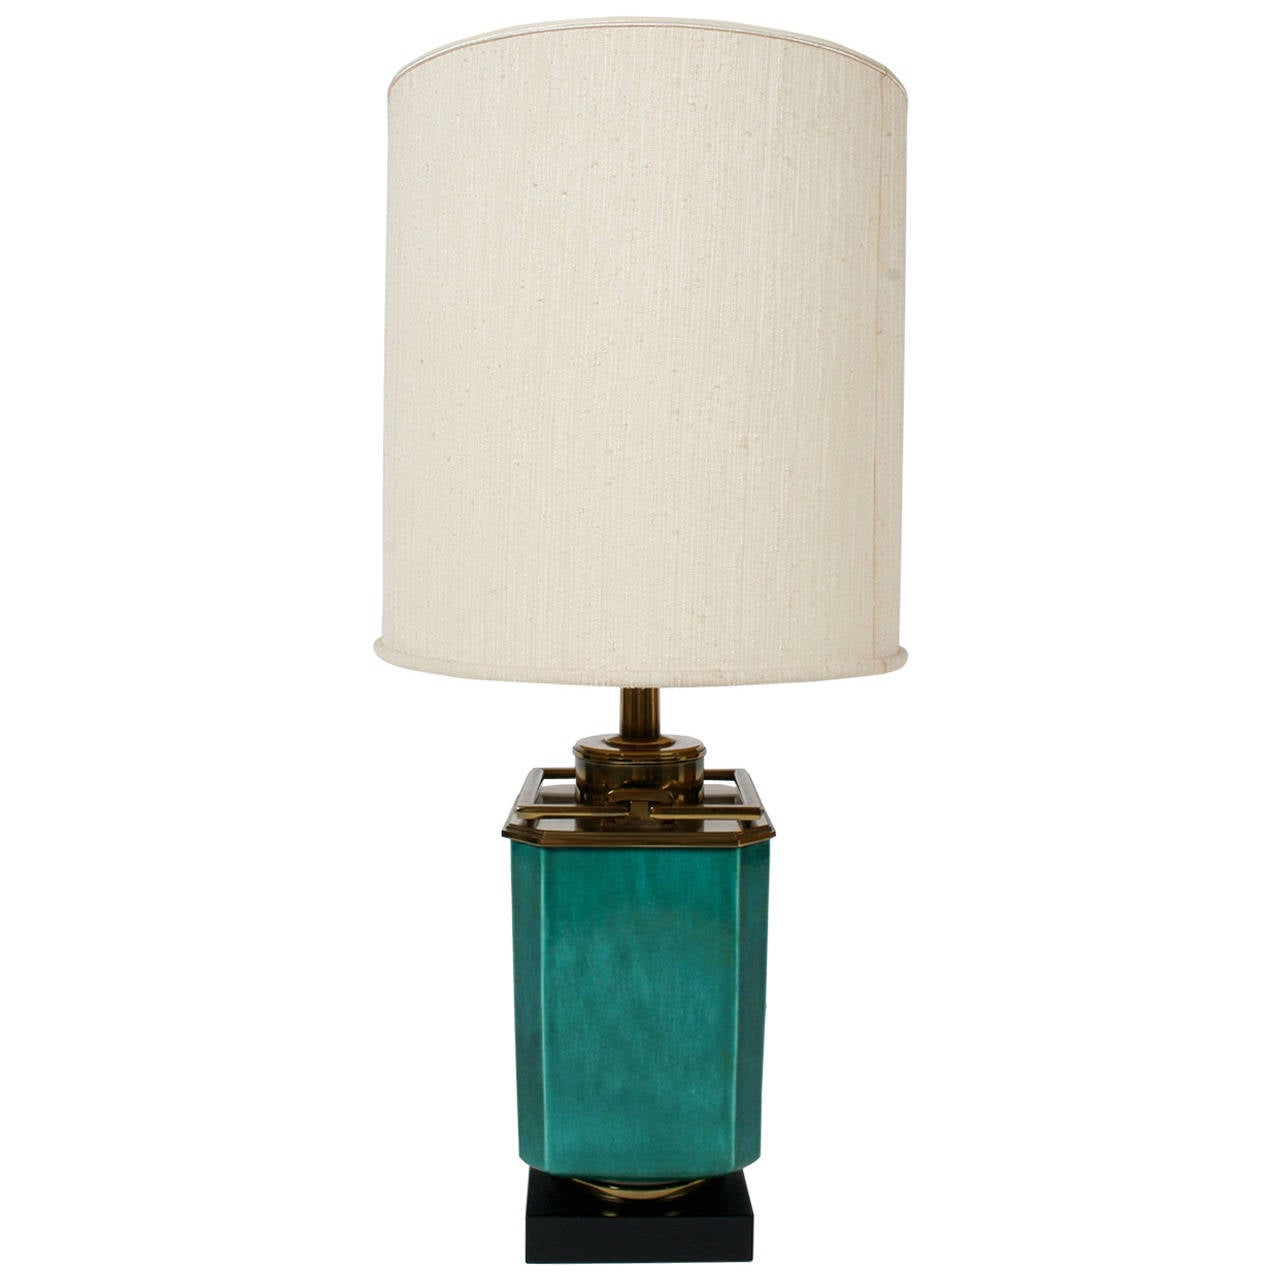 Stiffel green ceramic table lamp with brass fittings for sale at